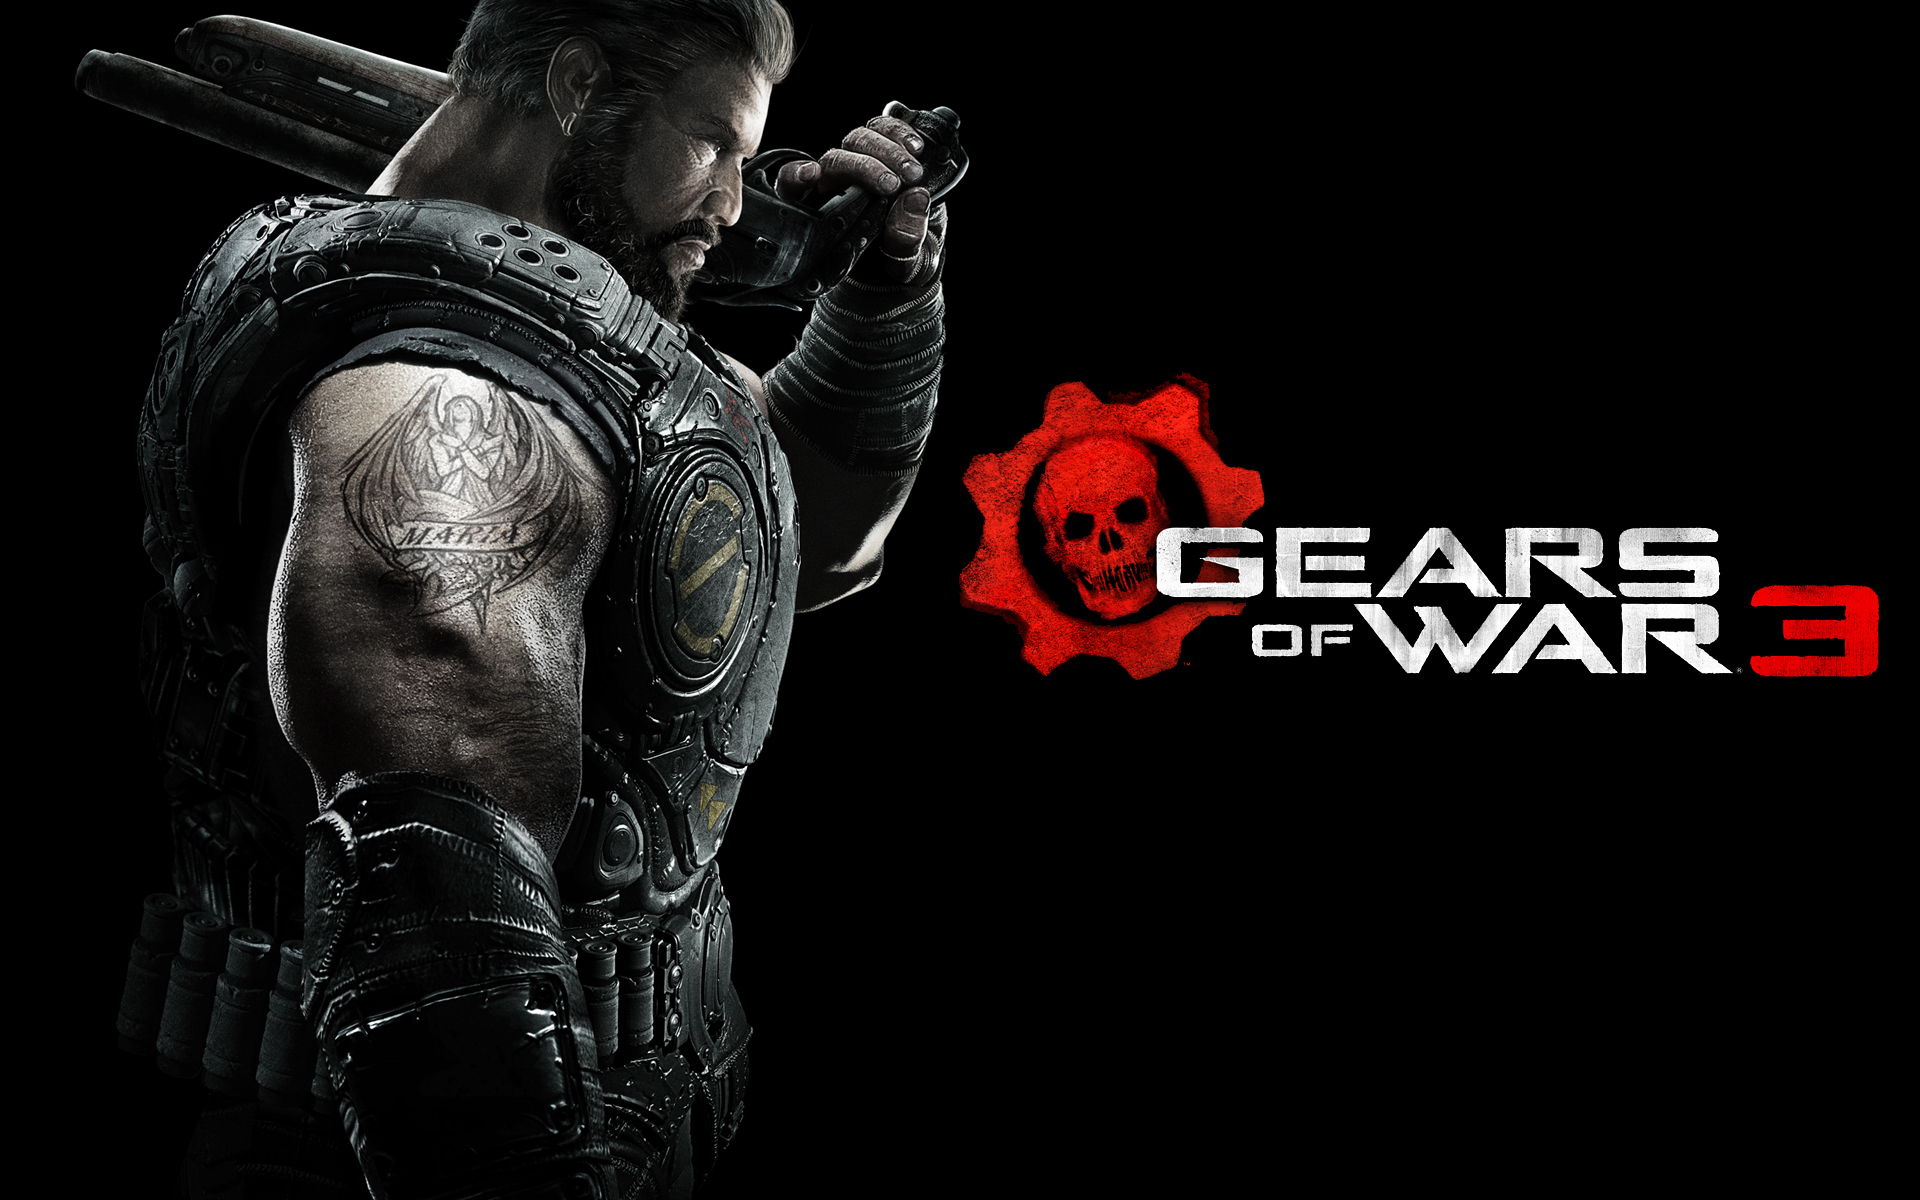 Free Download Fotos Gears Of War 3 Wallpaper 1920x1200 For Your